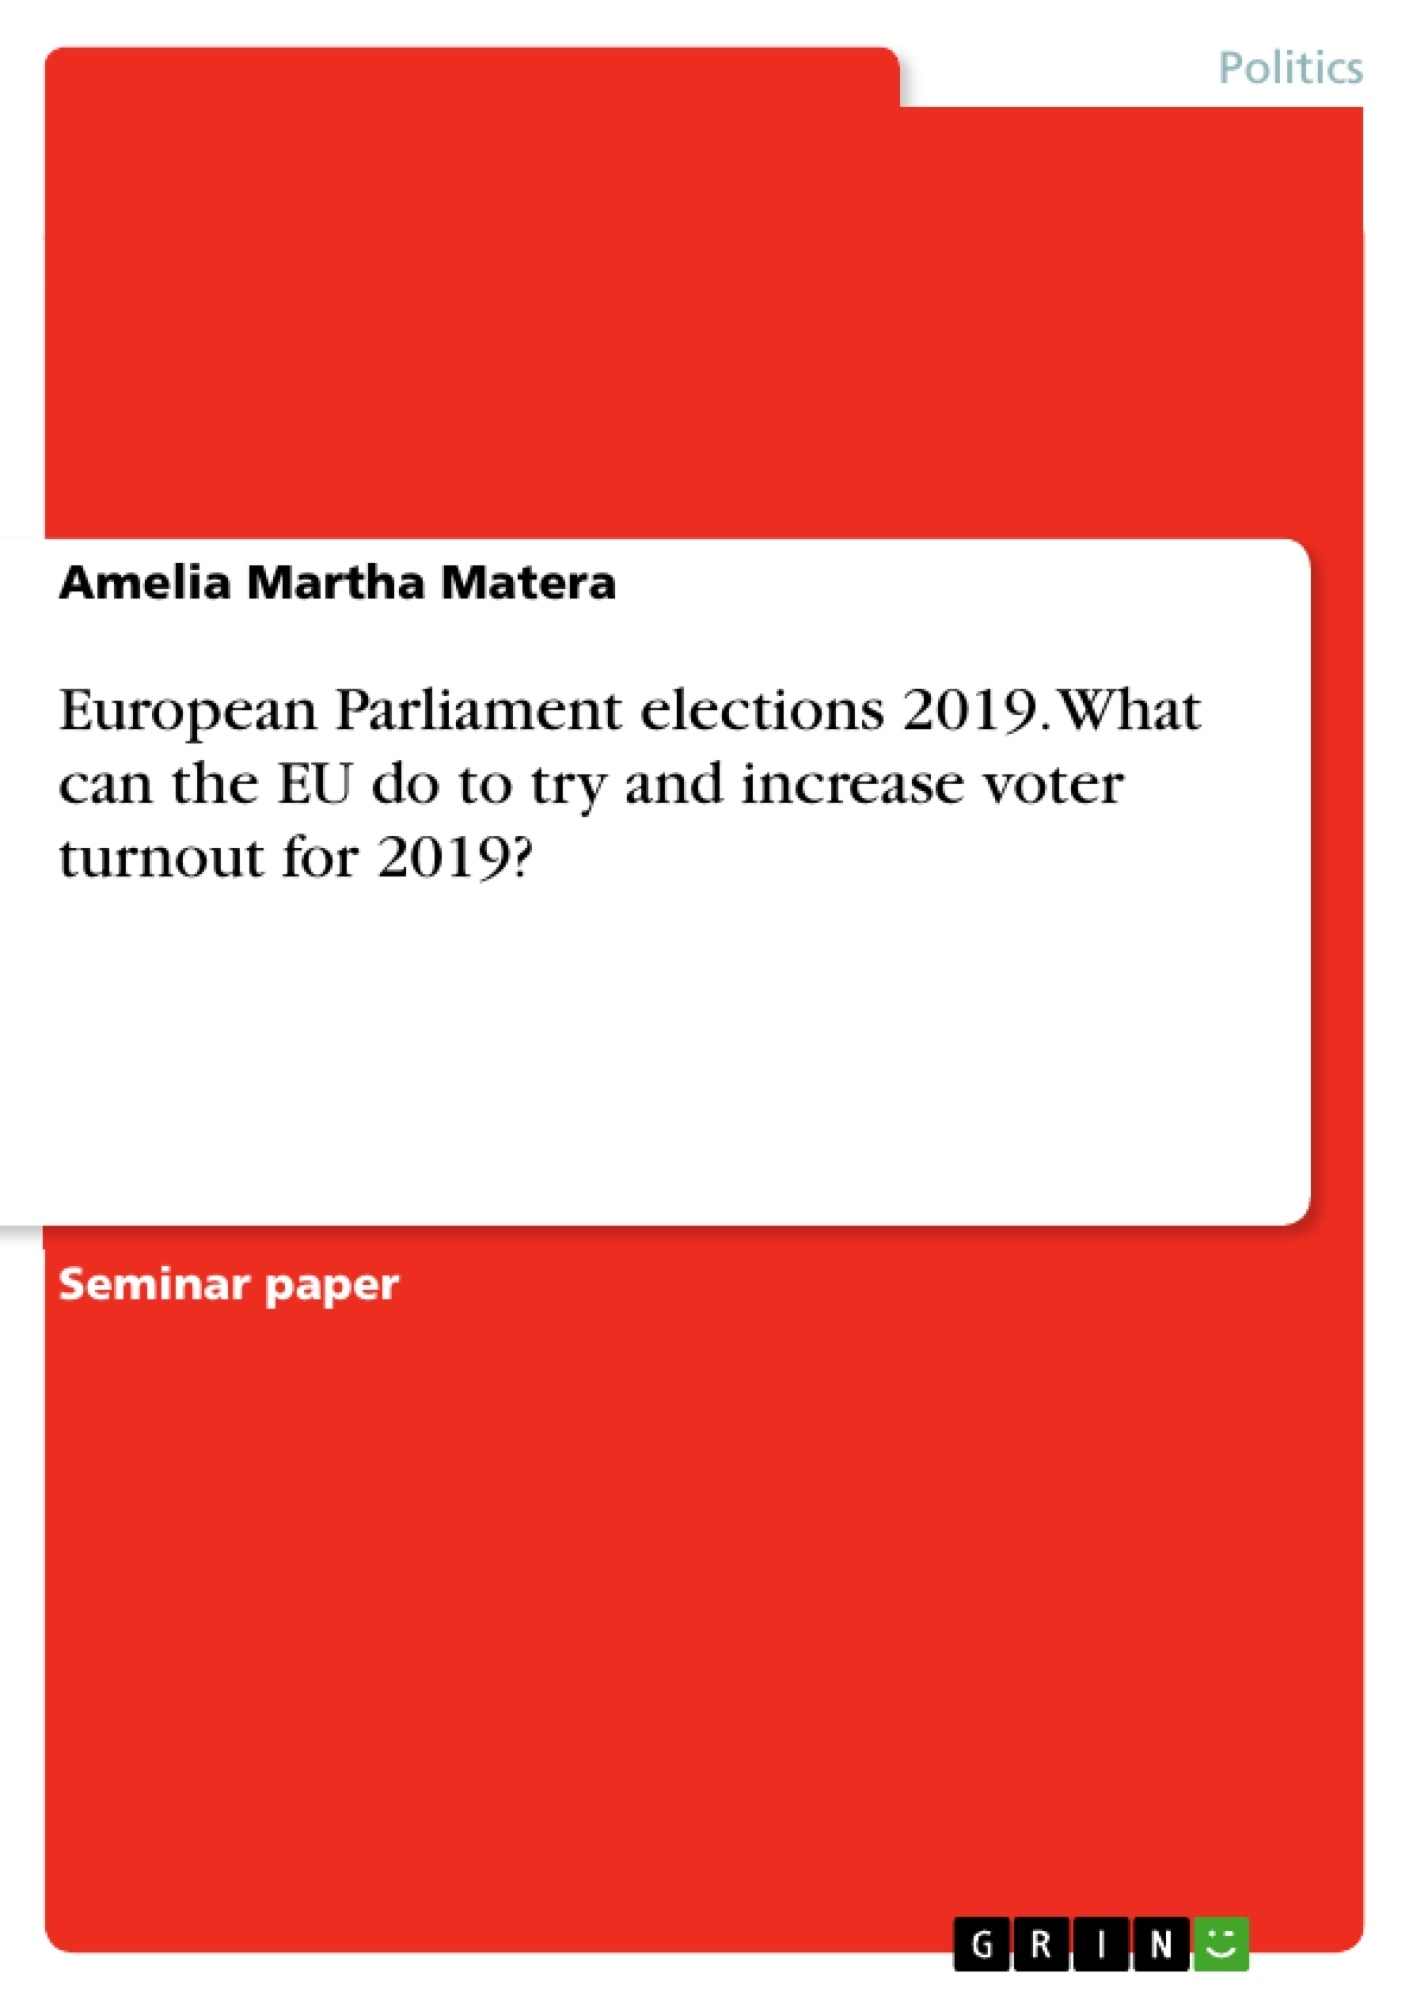 Title: European Parliament elections 2019. What can the EU do to try and increase voter turnout for 2019?